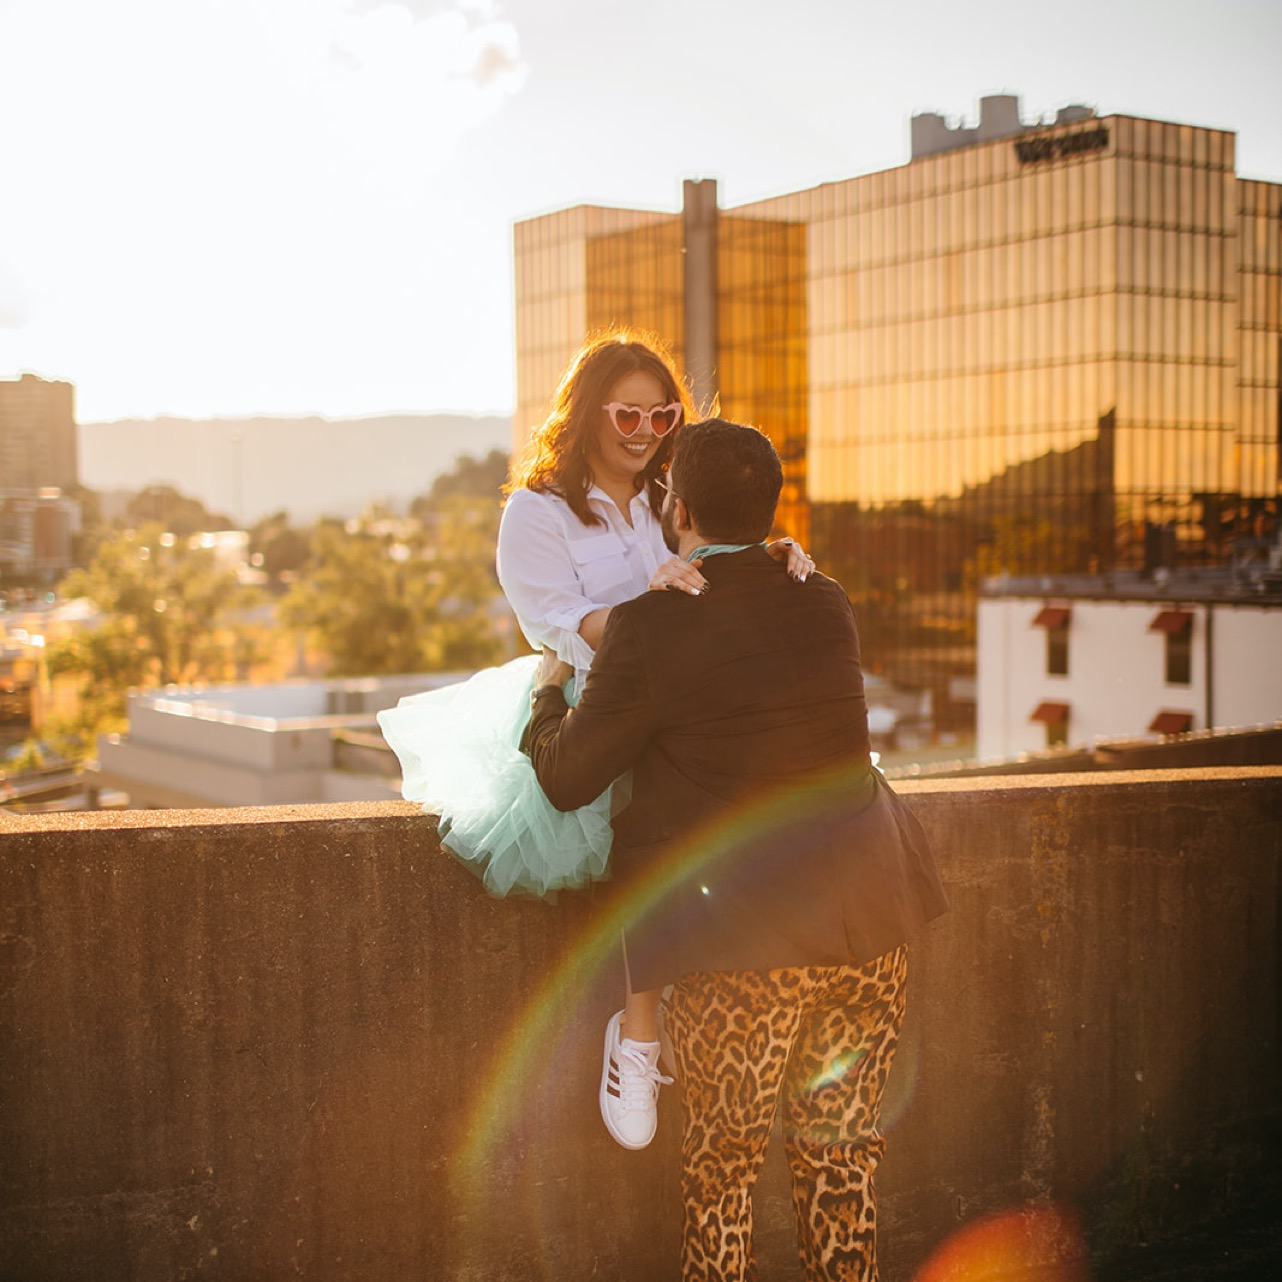 An engaged couple embraces against a barrier on a downtown Chattanooga rooftop.